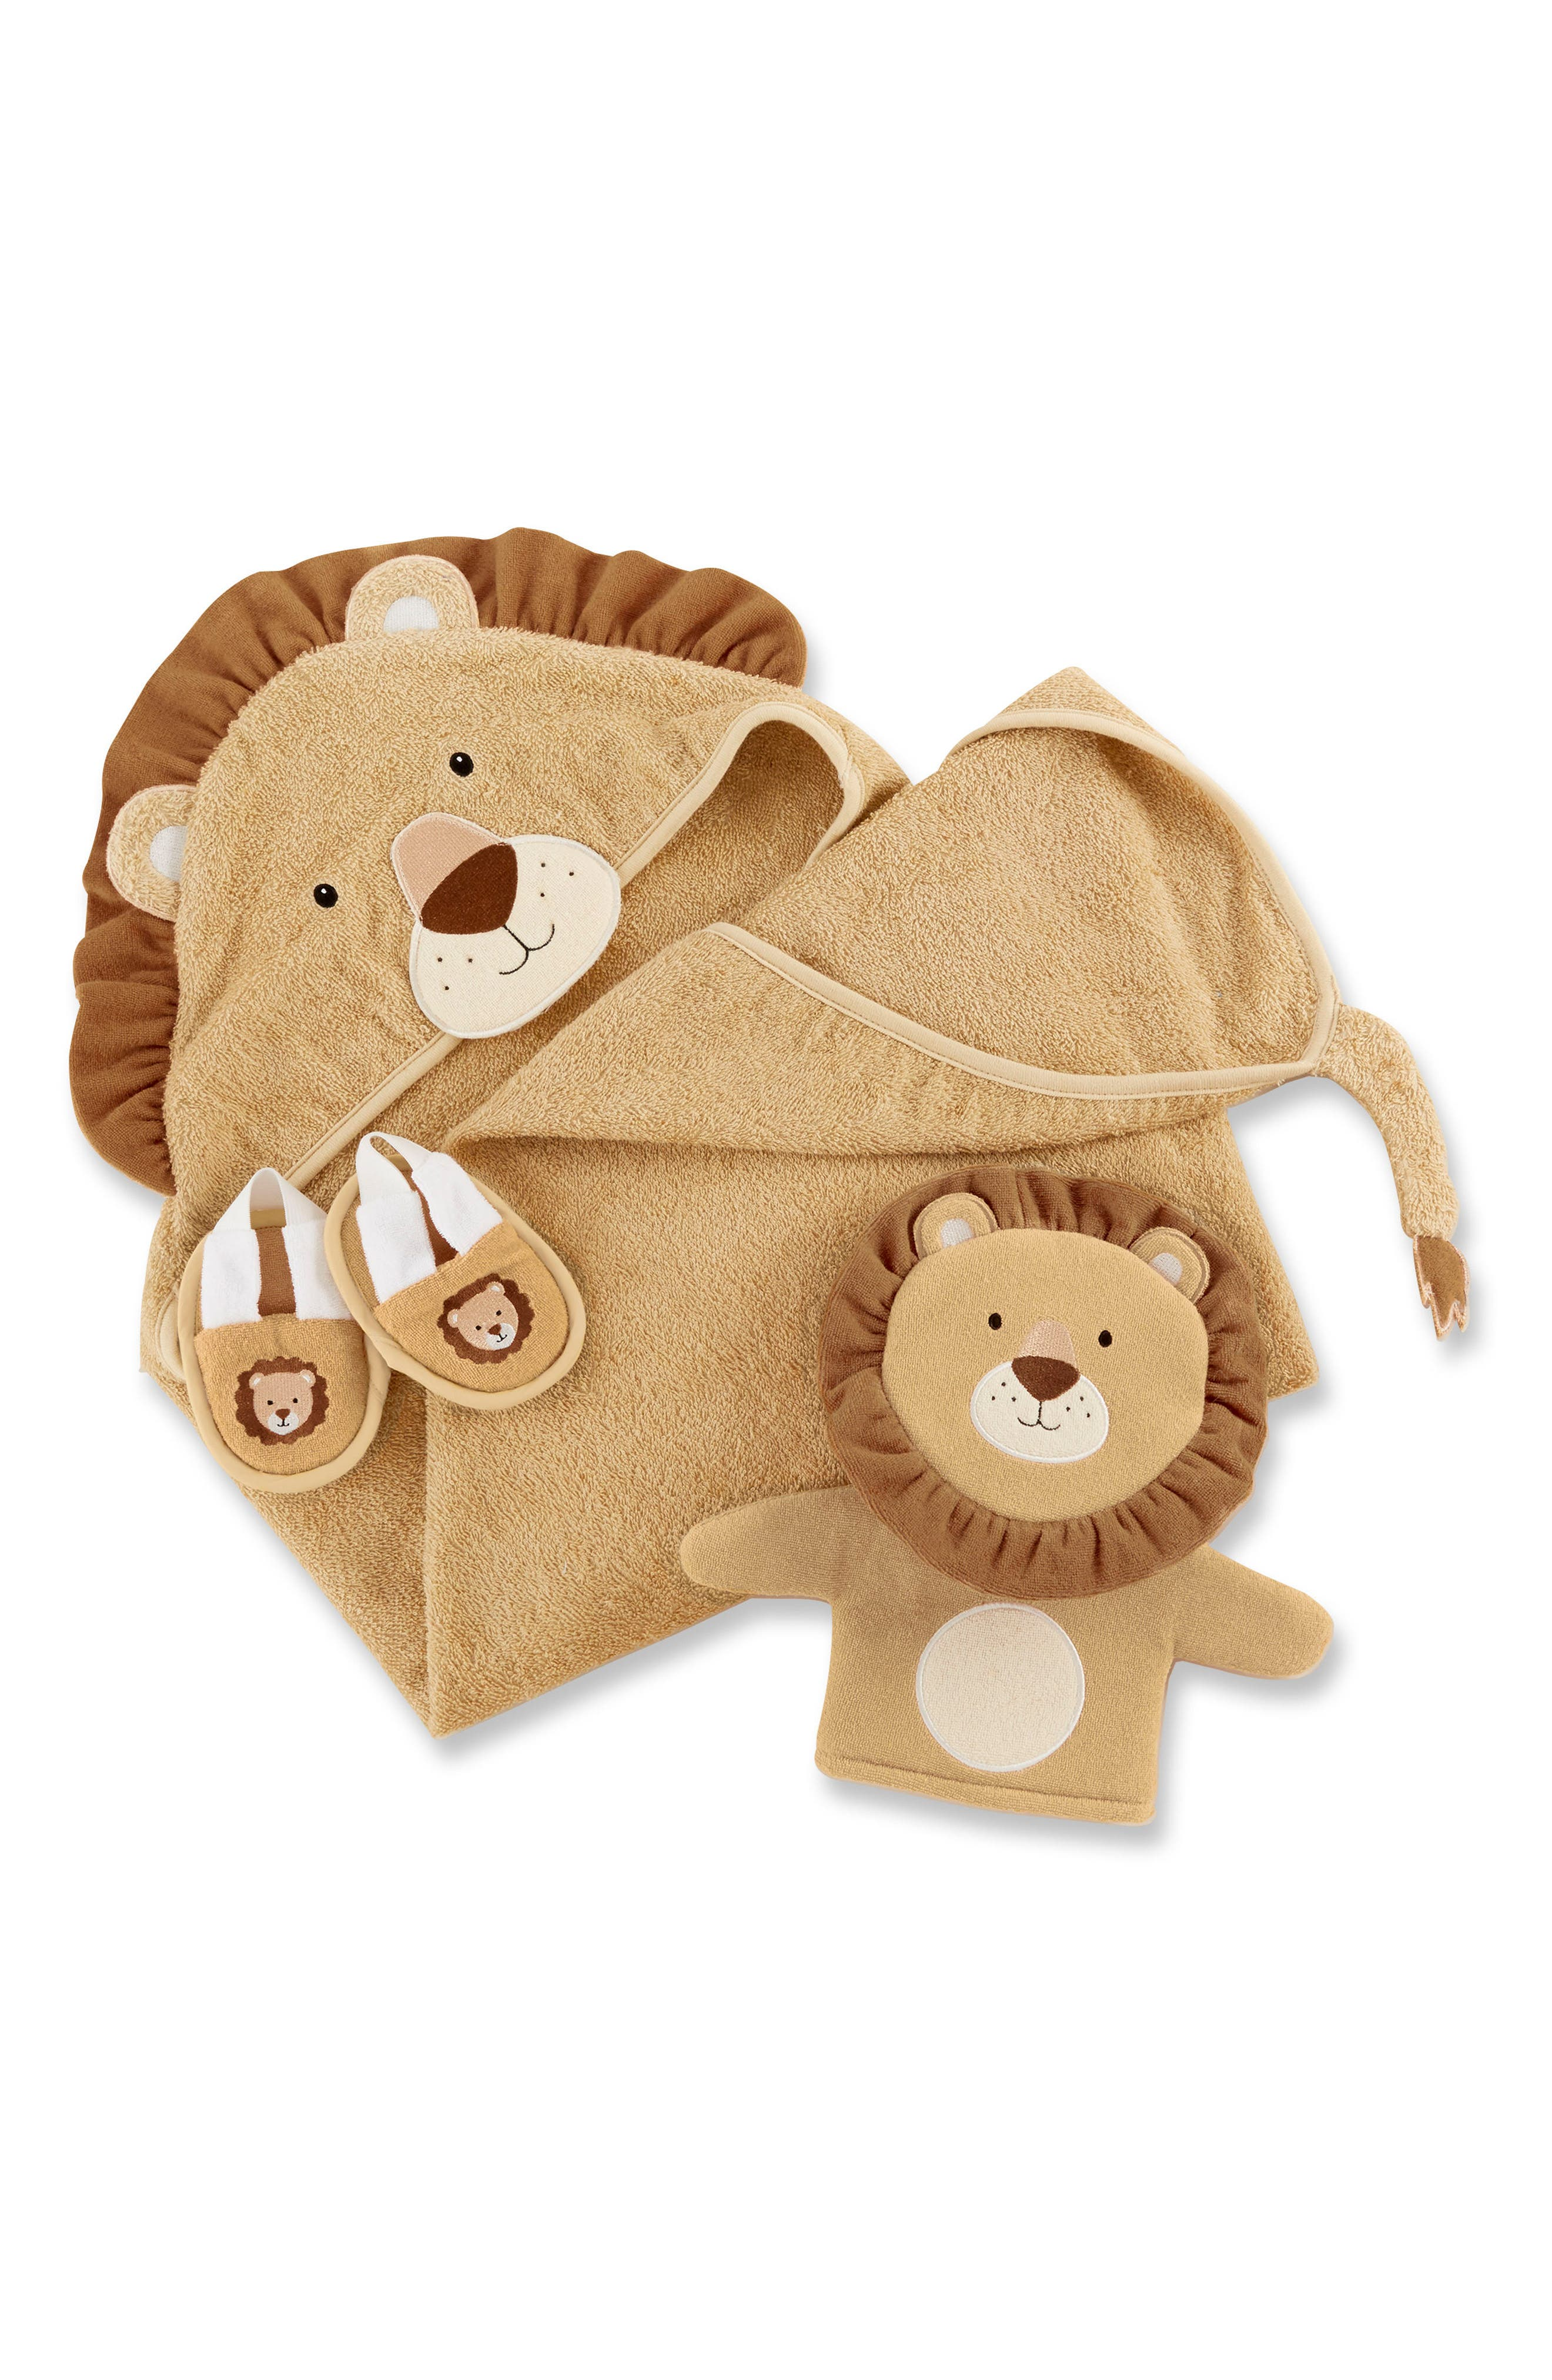 Main Image - Baby Aspen Lion Hooded Robe, Bath Mitt & Slippers Set (Baby)